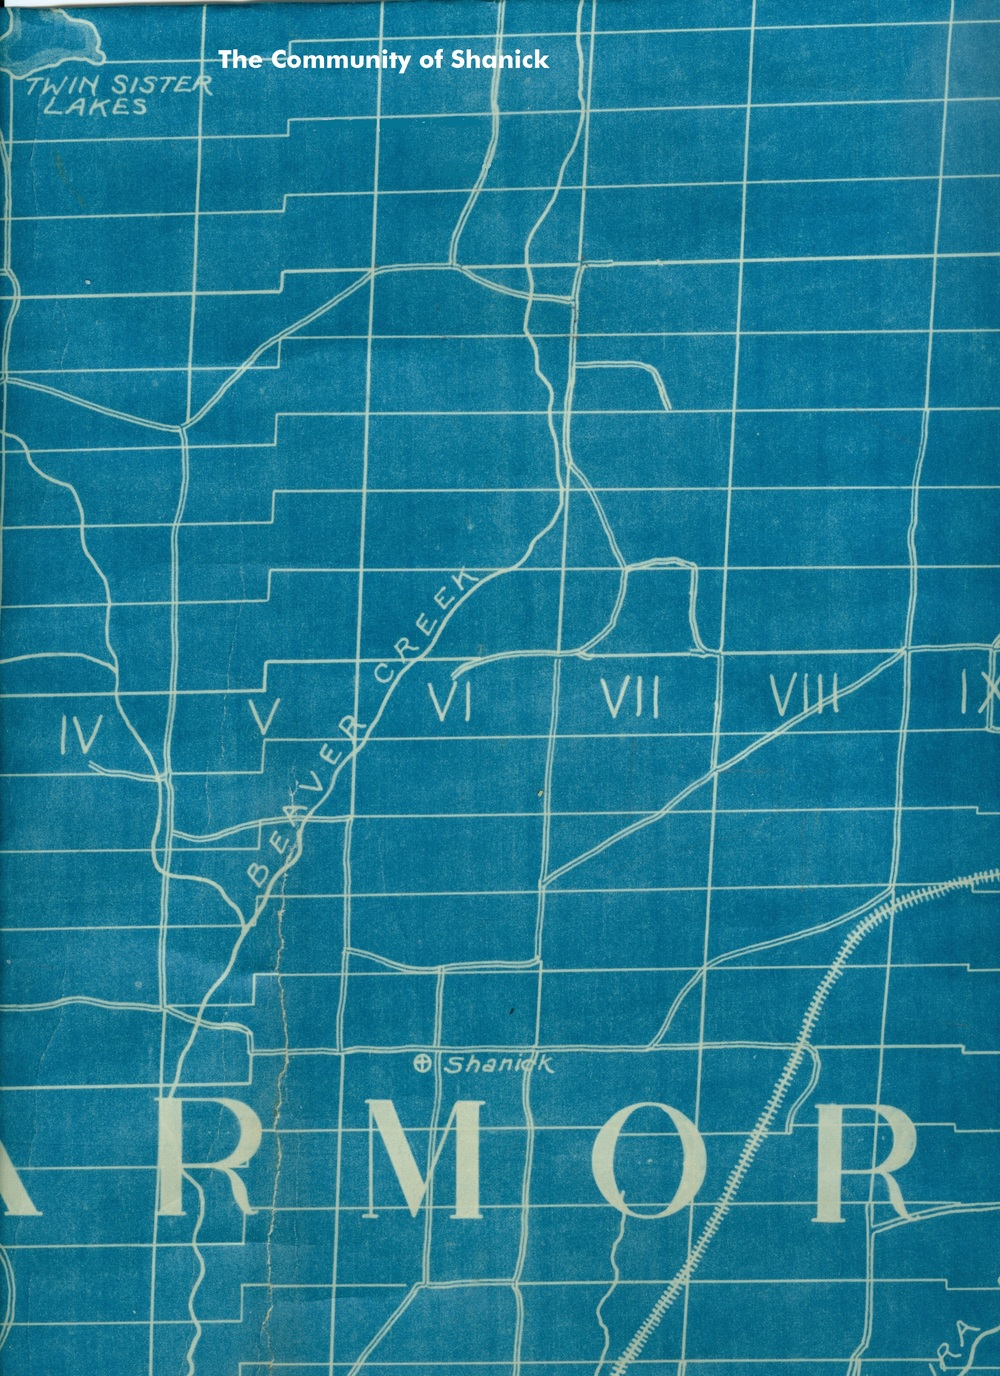 Although this map is dated 1925,  it still shows the orginal location of shanick at the intersection of centre line road and beaver creek road